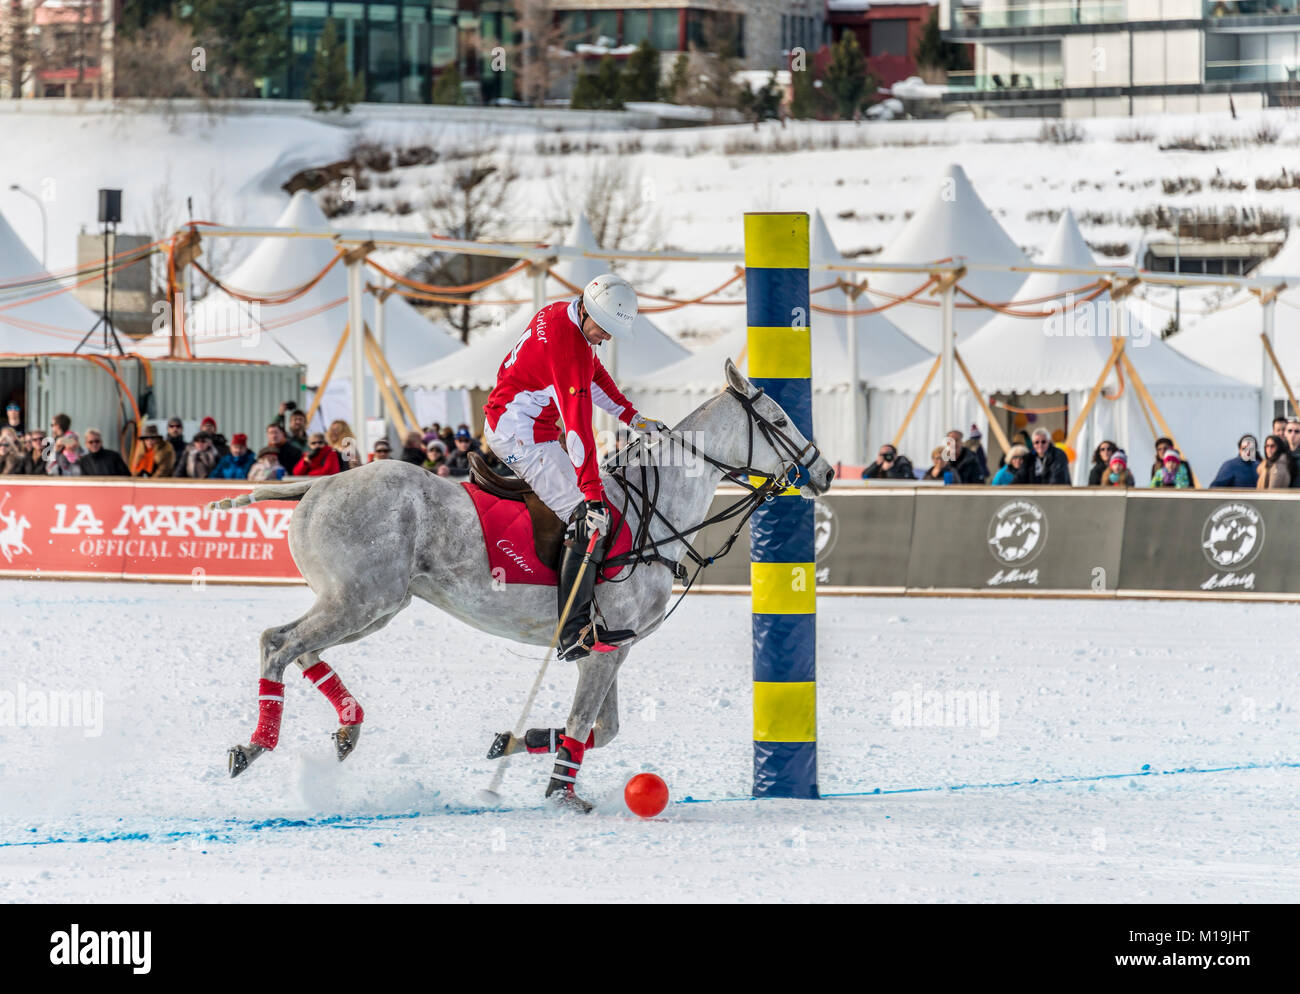 St.Moritz, Switzerland. 28th Jan, 2018. Member of the 'Cartier' team scoring a goal during the final of - Stock Image